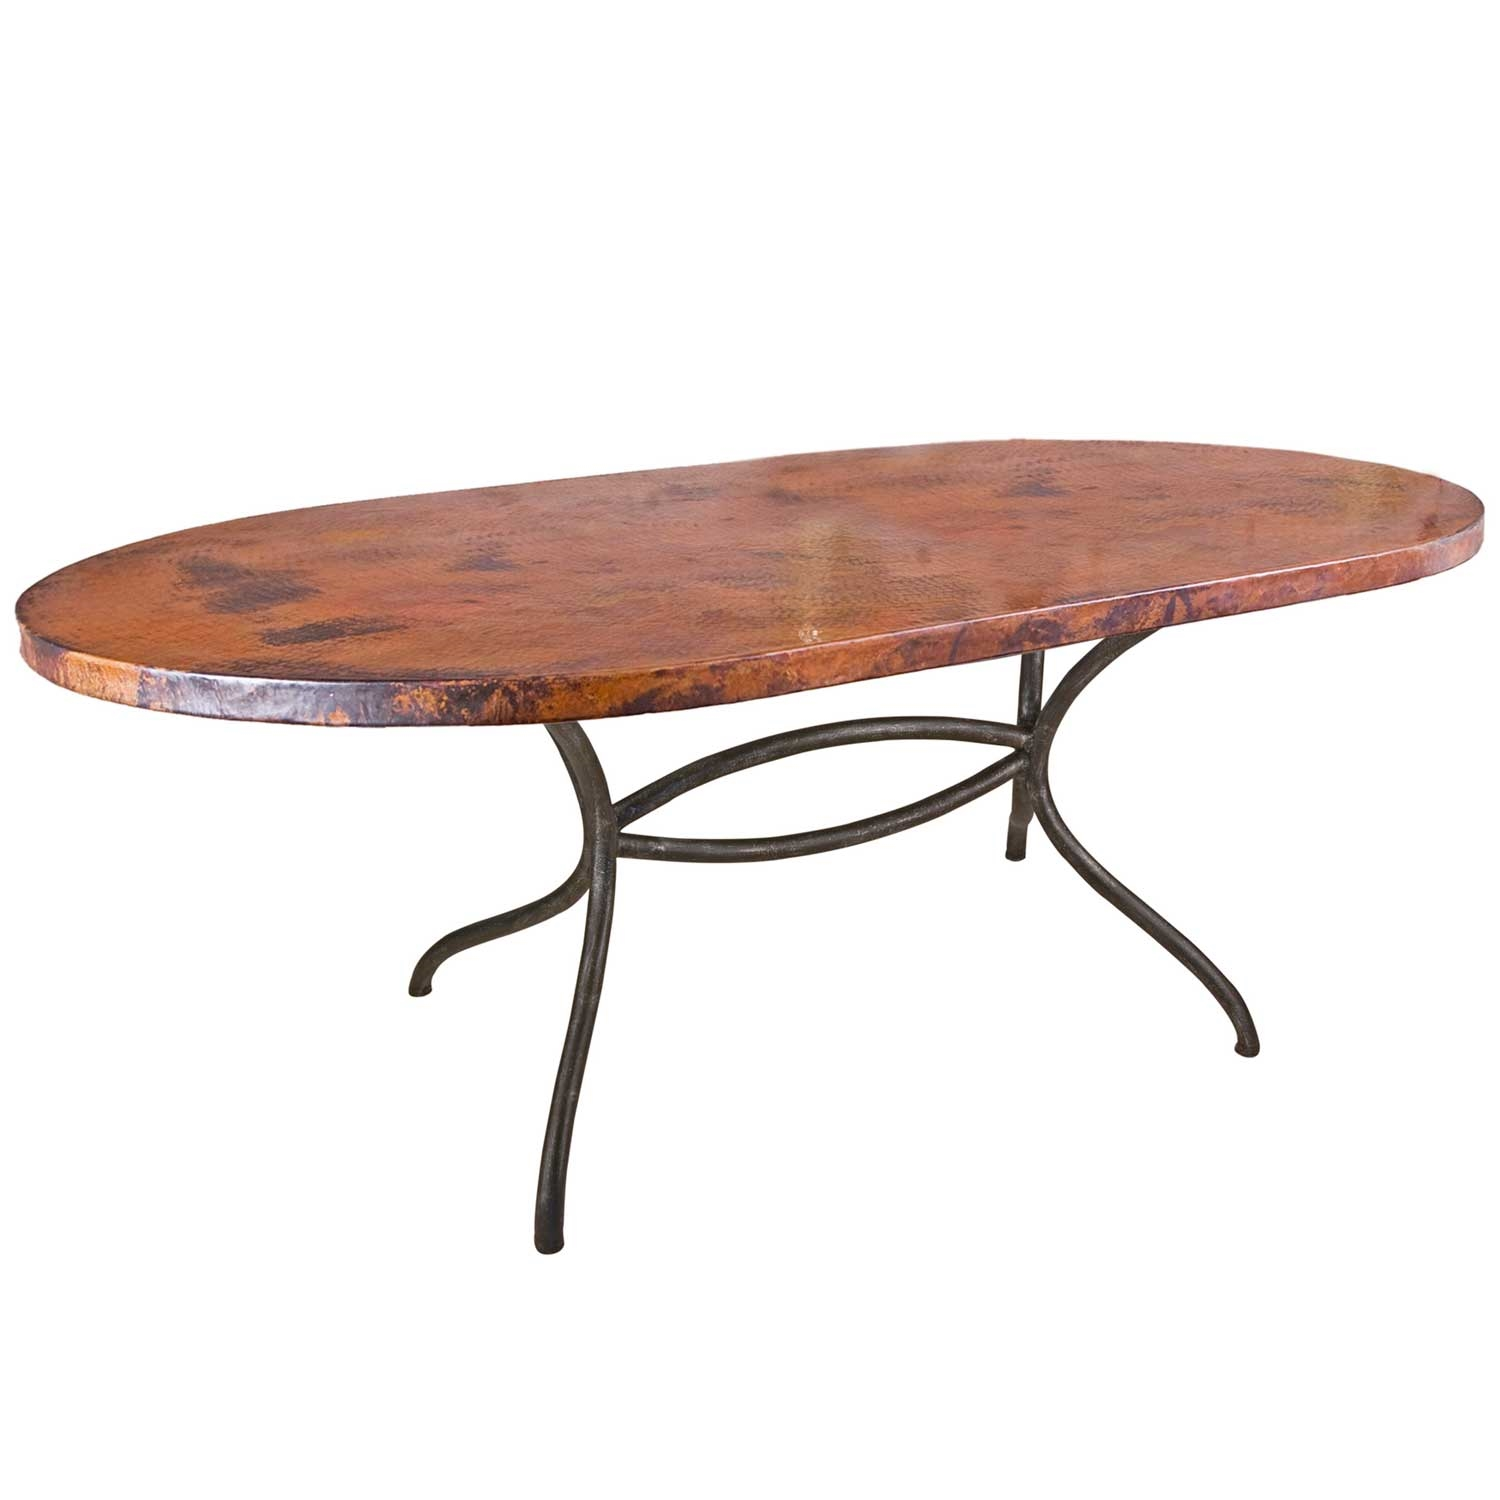 Pictured Here Is The Italia Oval Dining Table With 44 X 72 Soft Oval Copper Top Hand Crafted